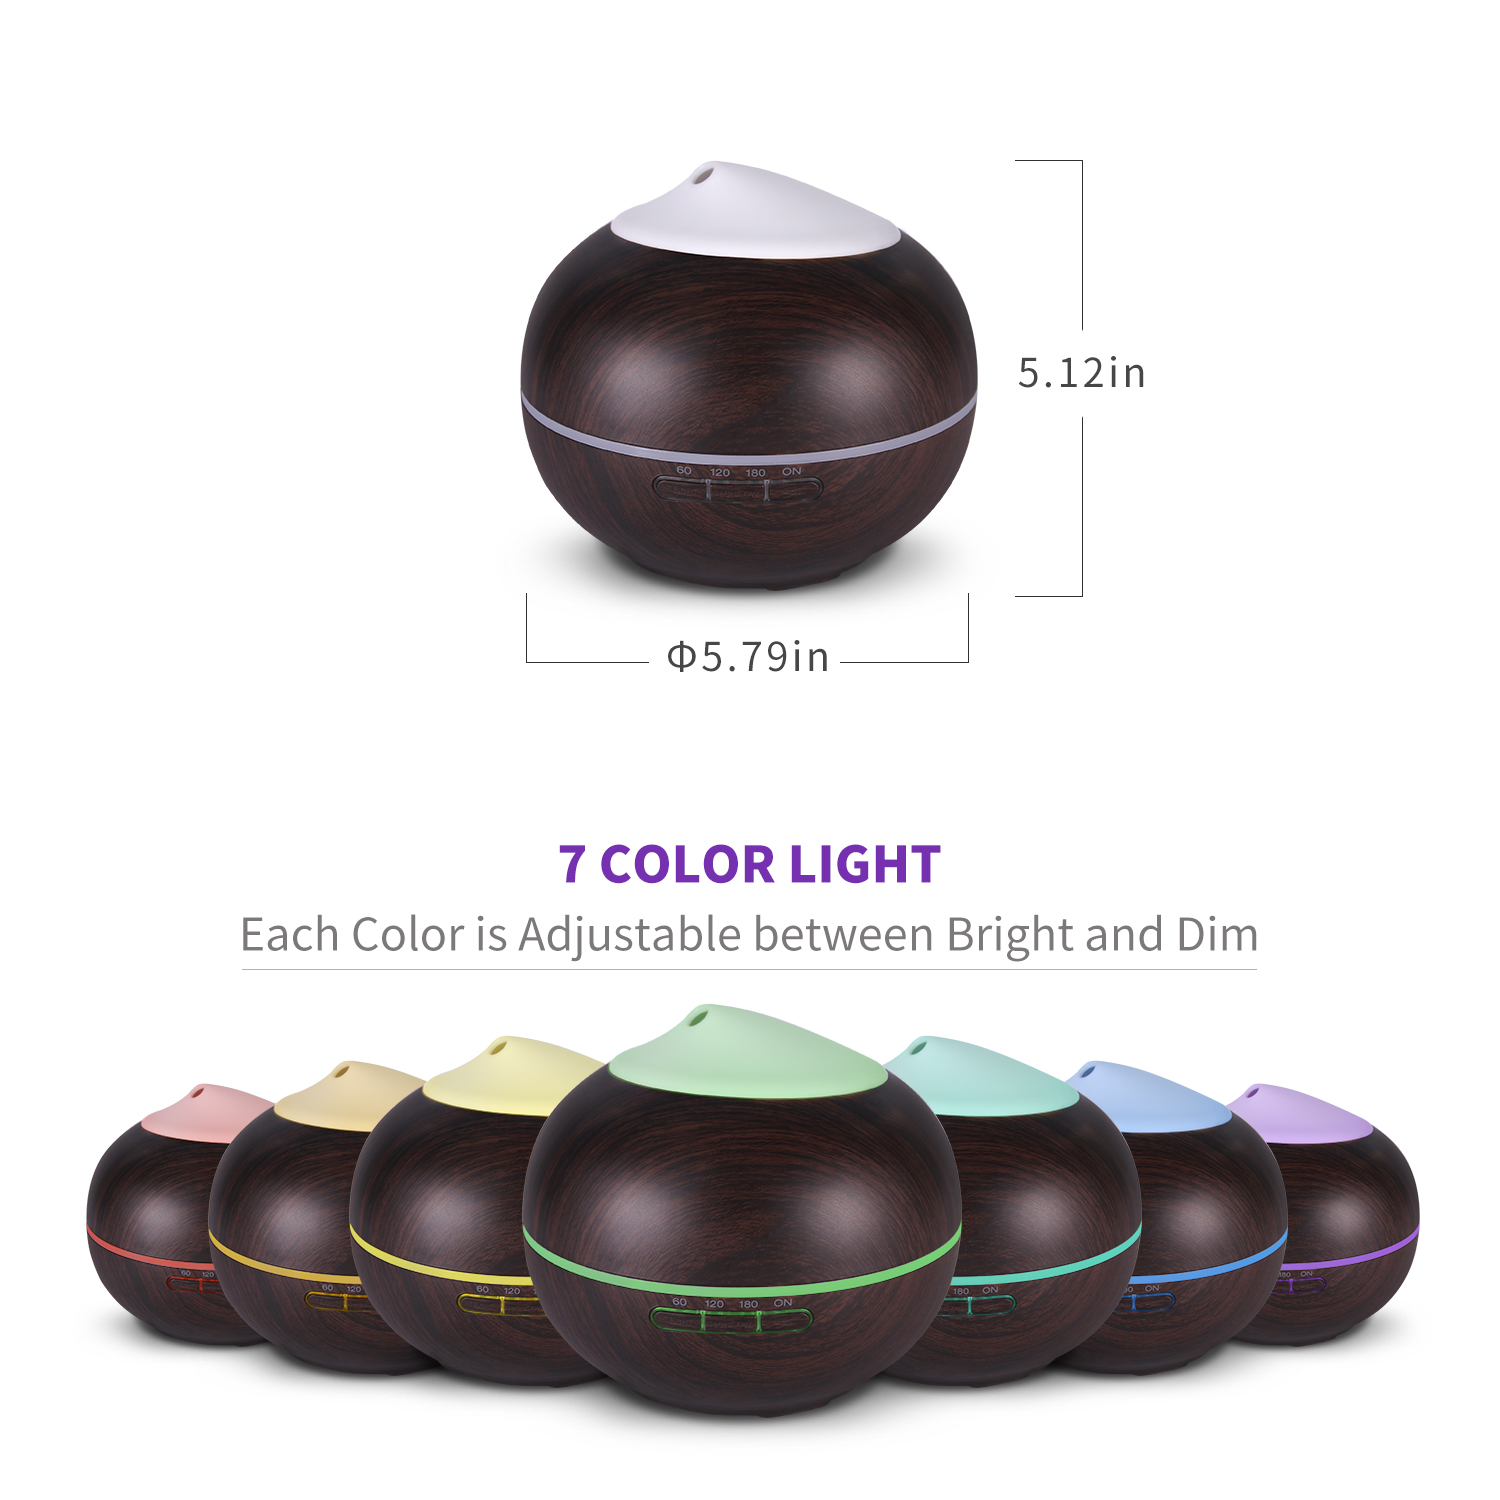 ESSENTIAL OIL DIFFUSER (9)